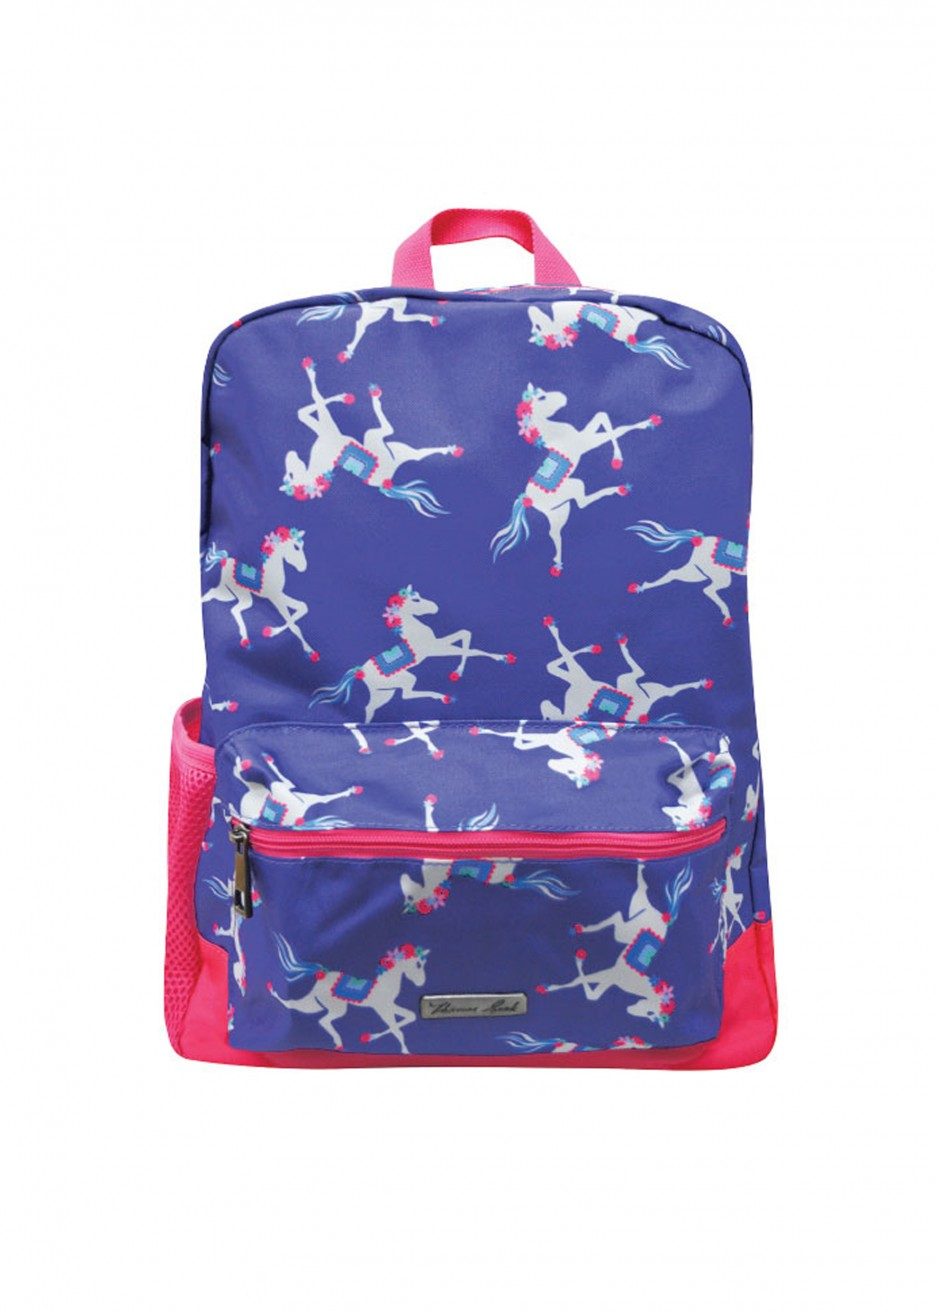 HORSES PRINT BACKPACK